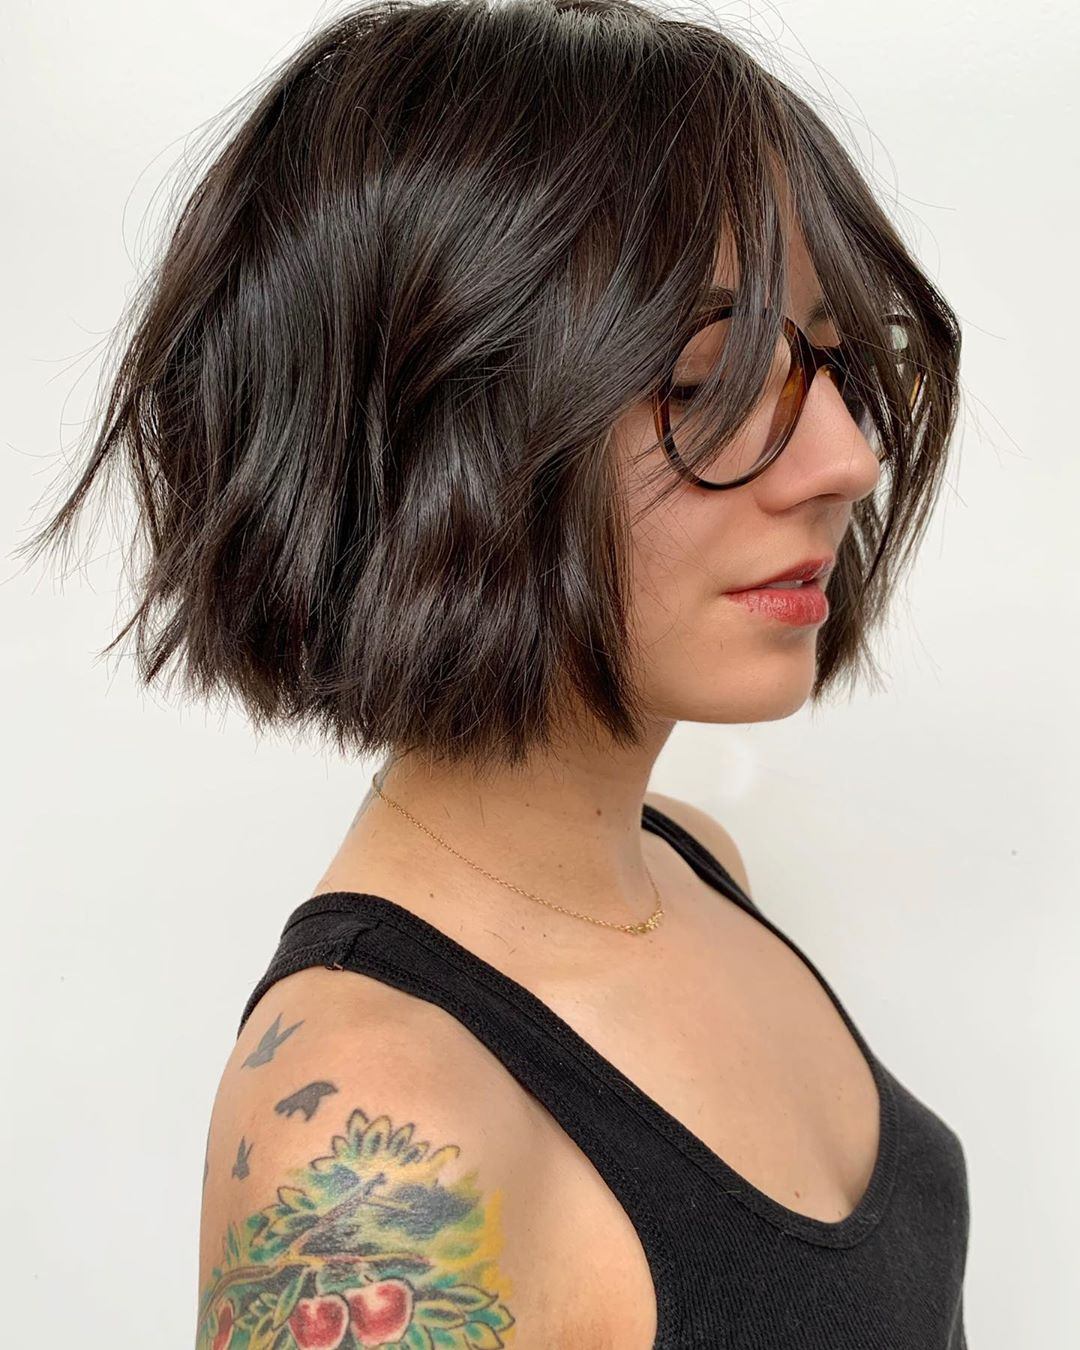 Short Crop with Fringe and Glasses